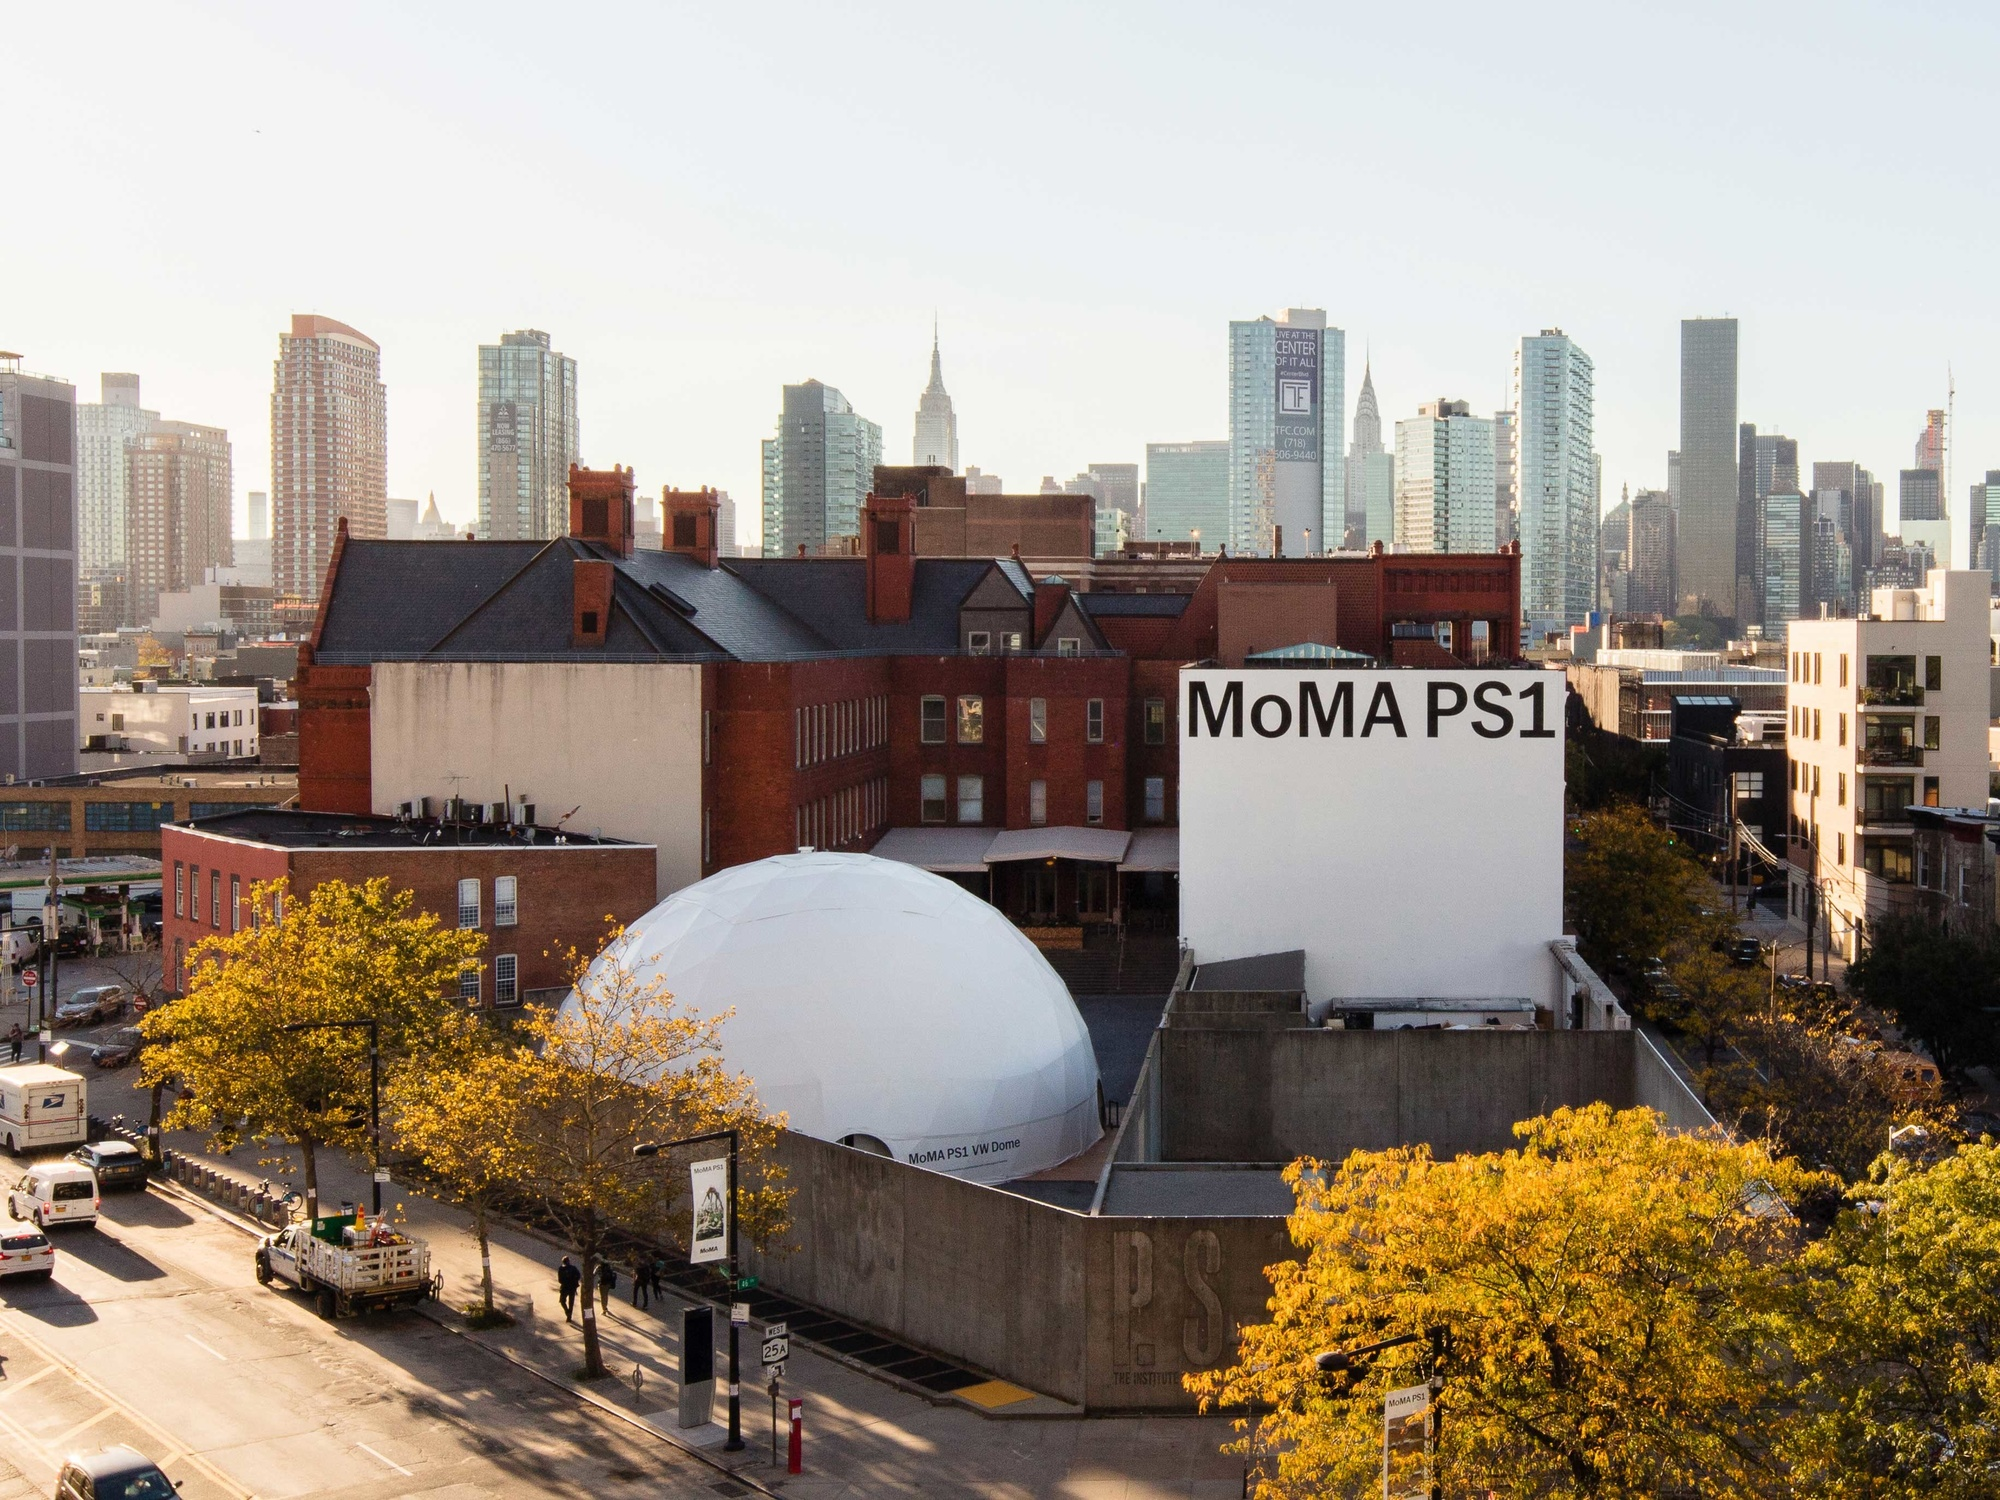 View exhibition at momaps1.org »